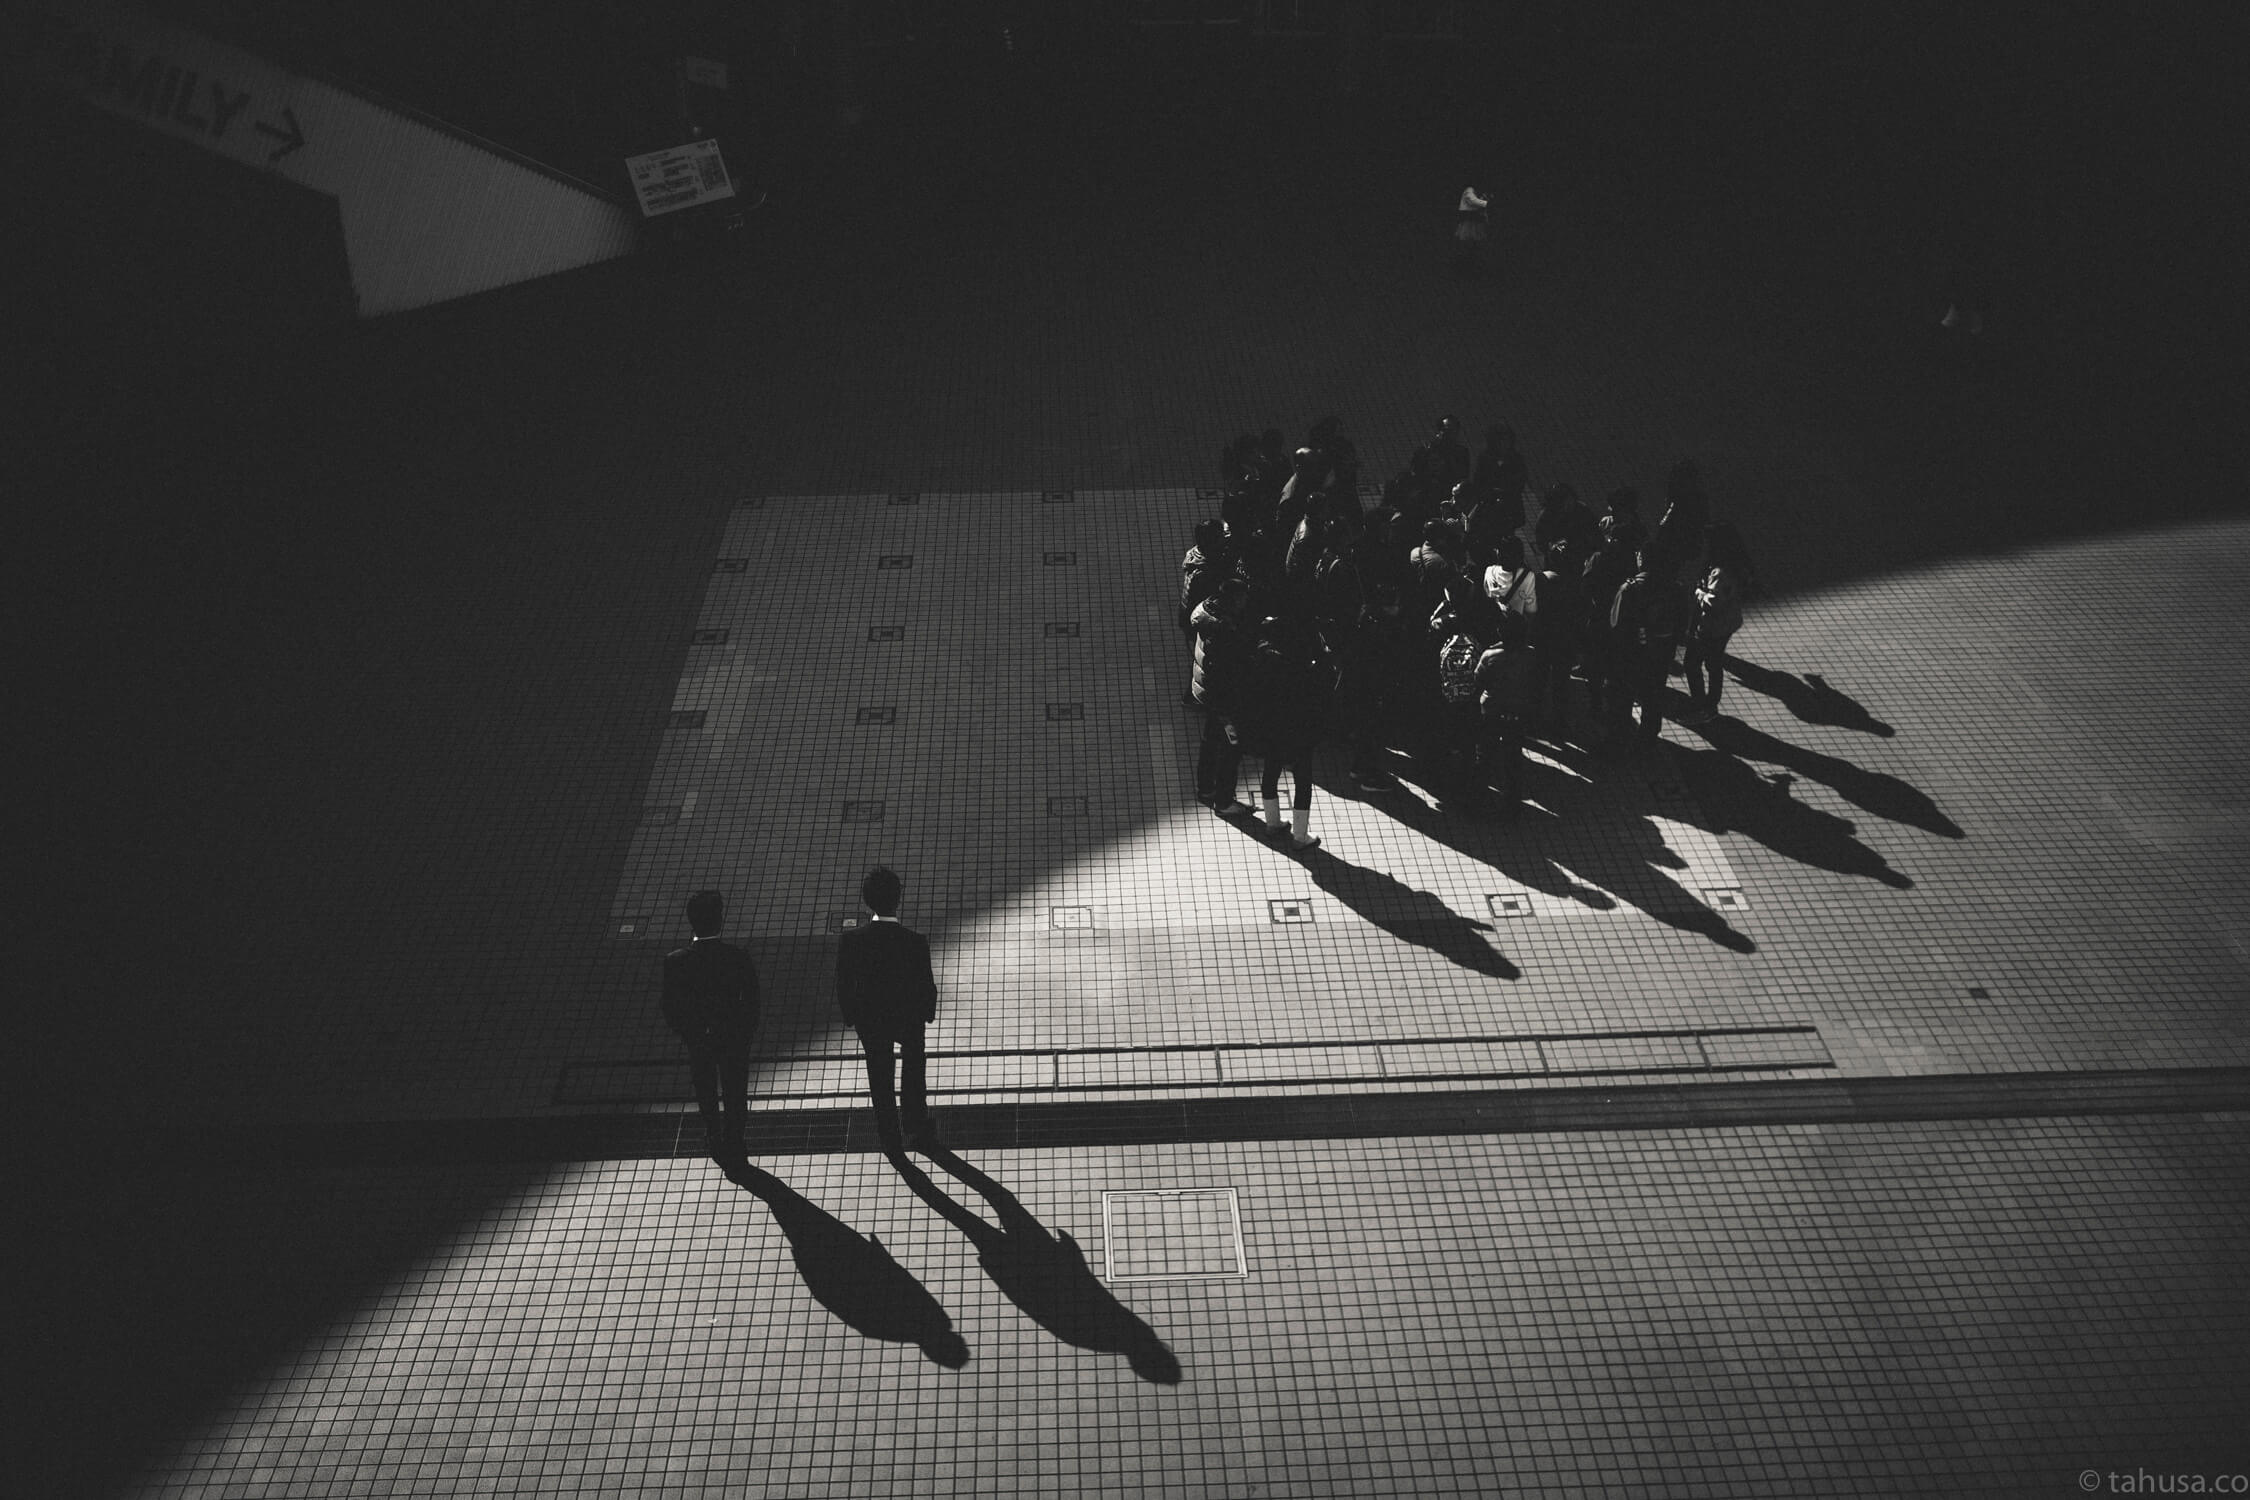 outliners-outside-crowd-creating-geometry-circle-district-japan-street-tokyo-streetphotography-blackandwhite-BW-B&W-japanese-travel-with-Sony-A7-A7II-digital-camera-old-nokton-voigtlander-50mm-f1.5-1.5-prominent-mount-vintage